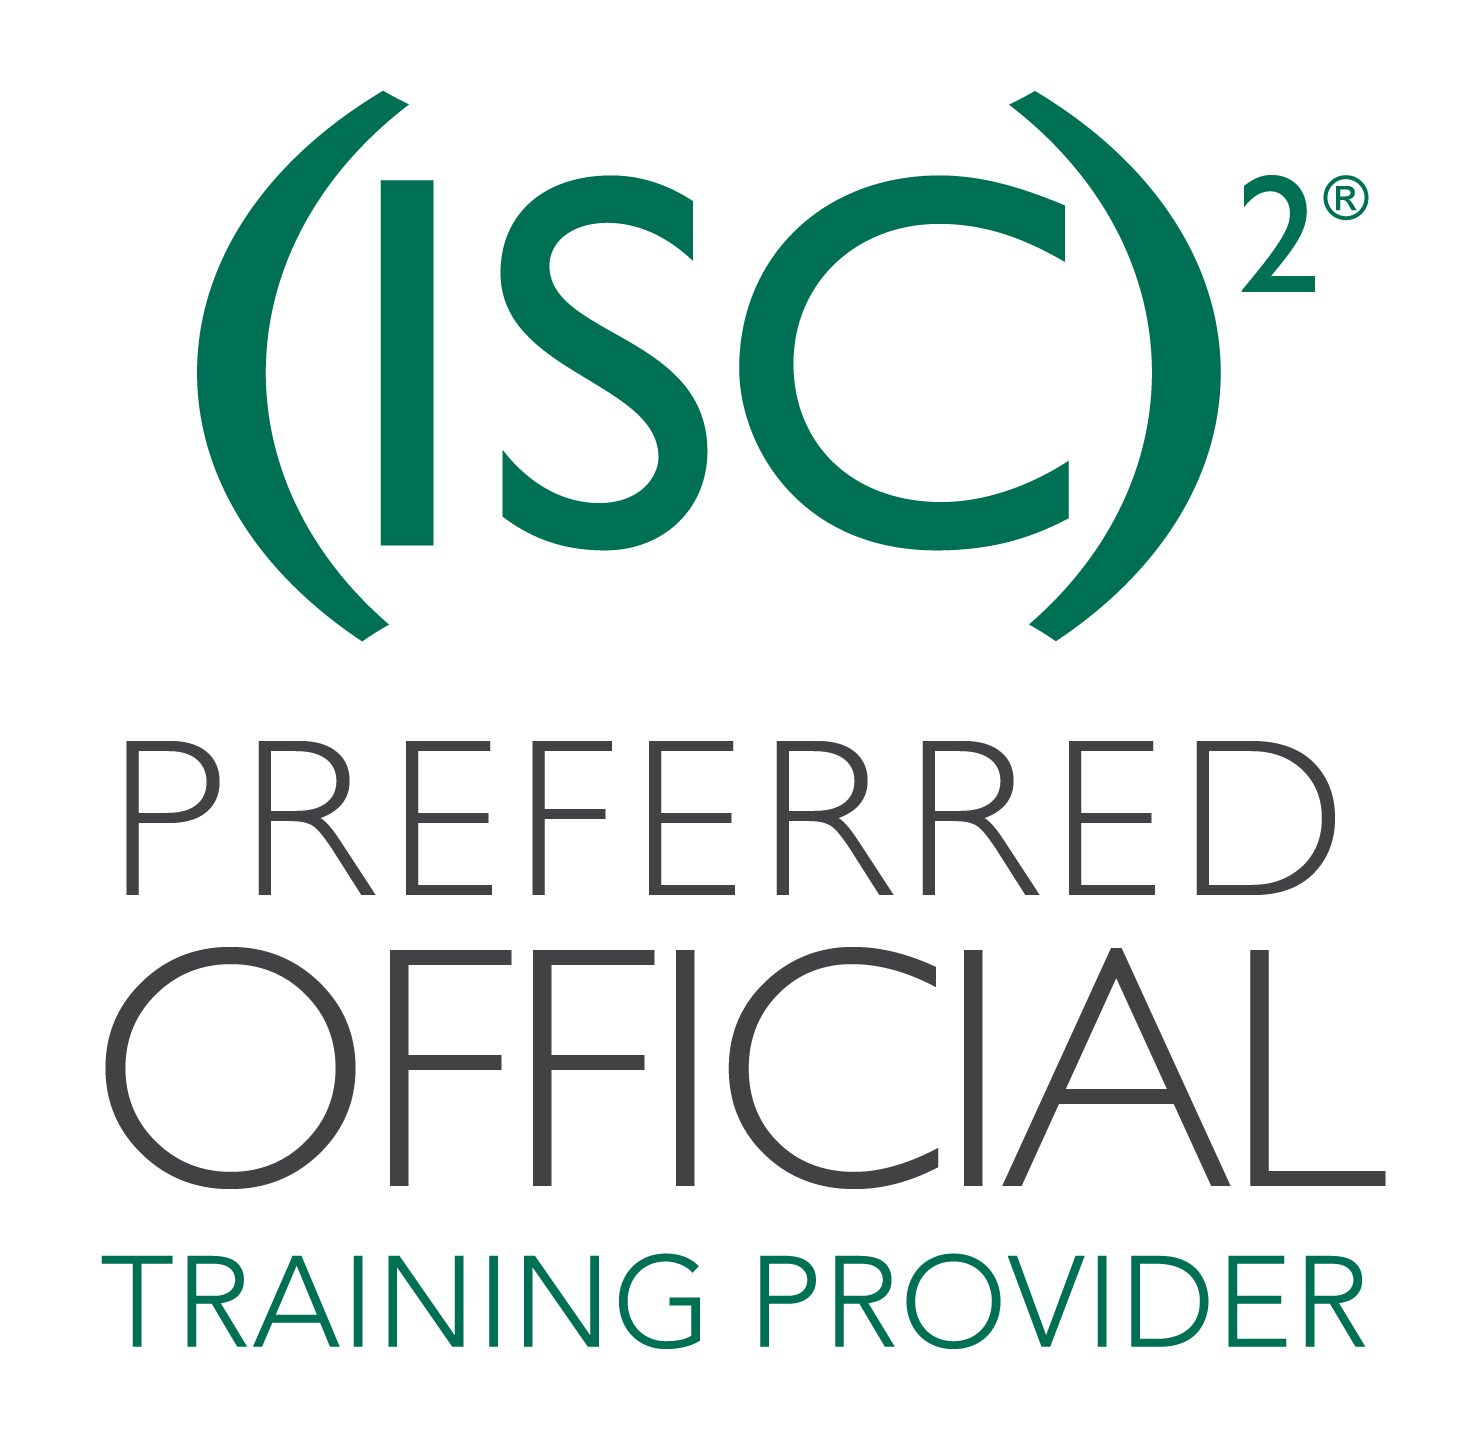 Official HCISPP Training Provider